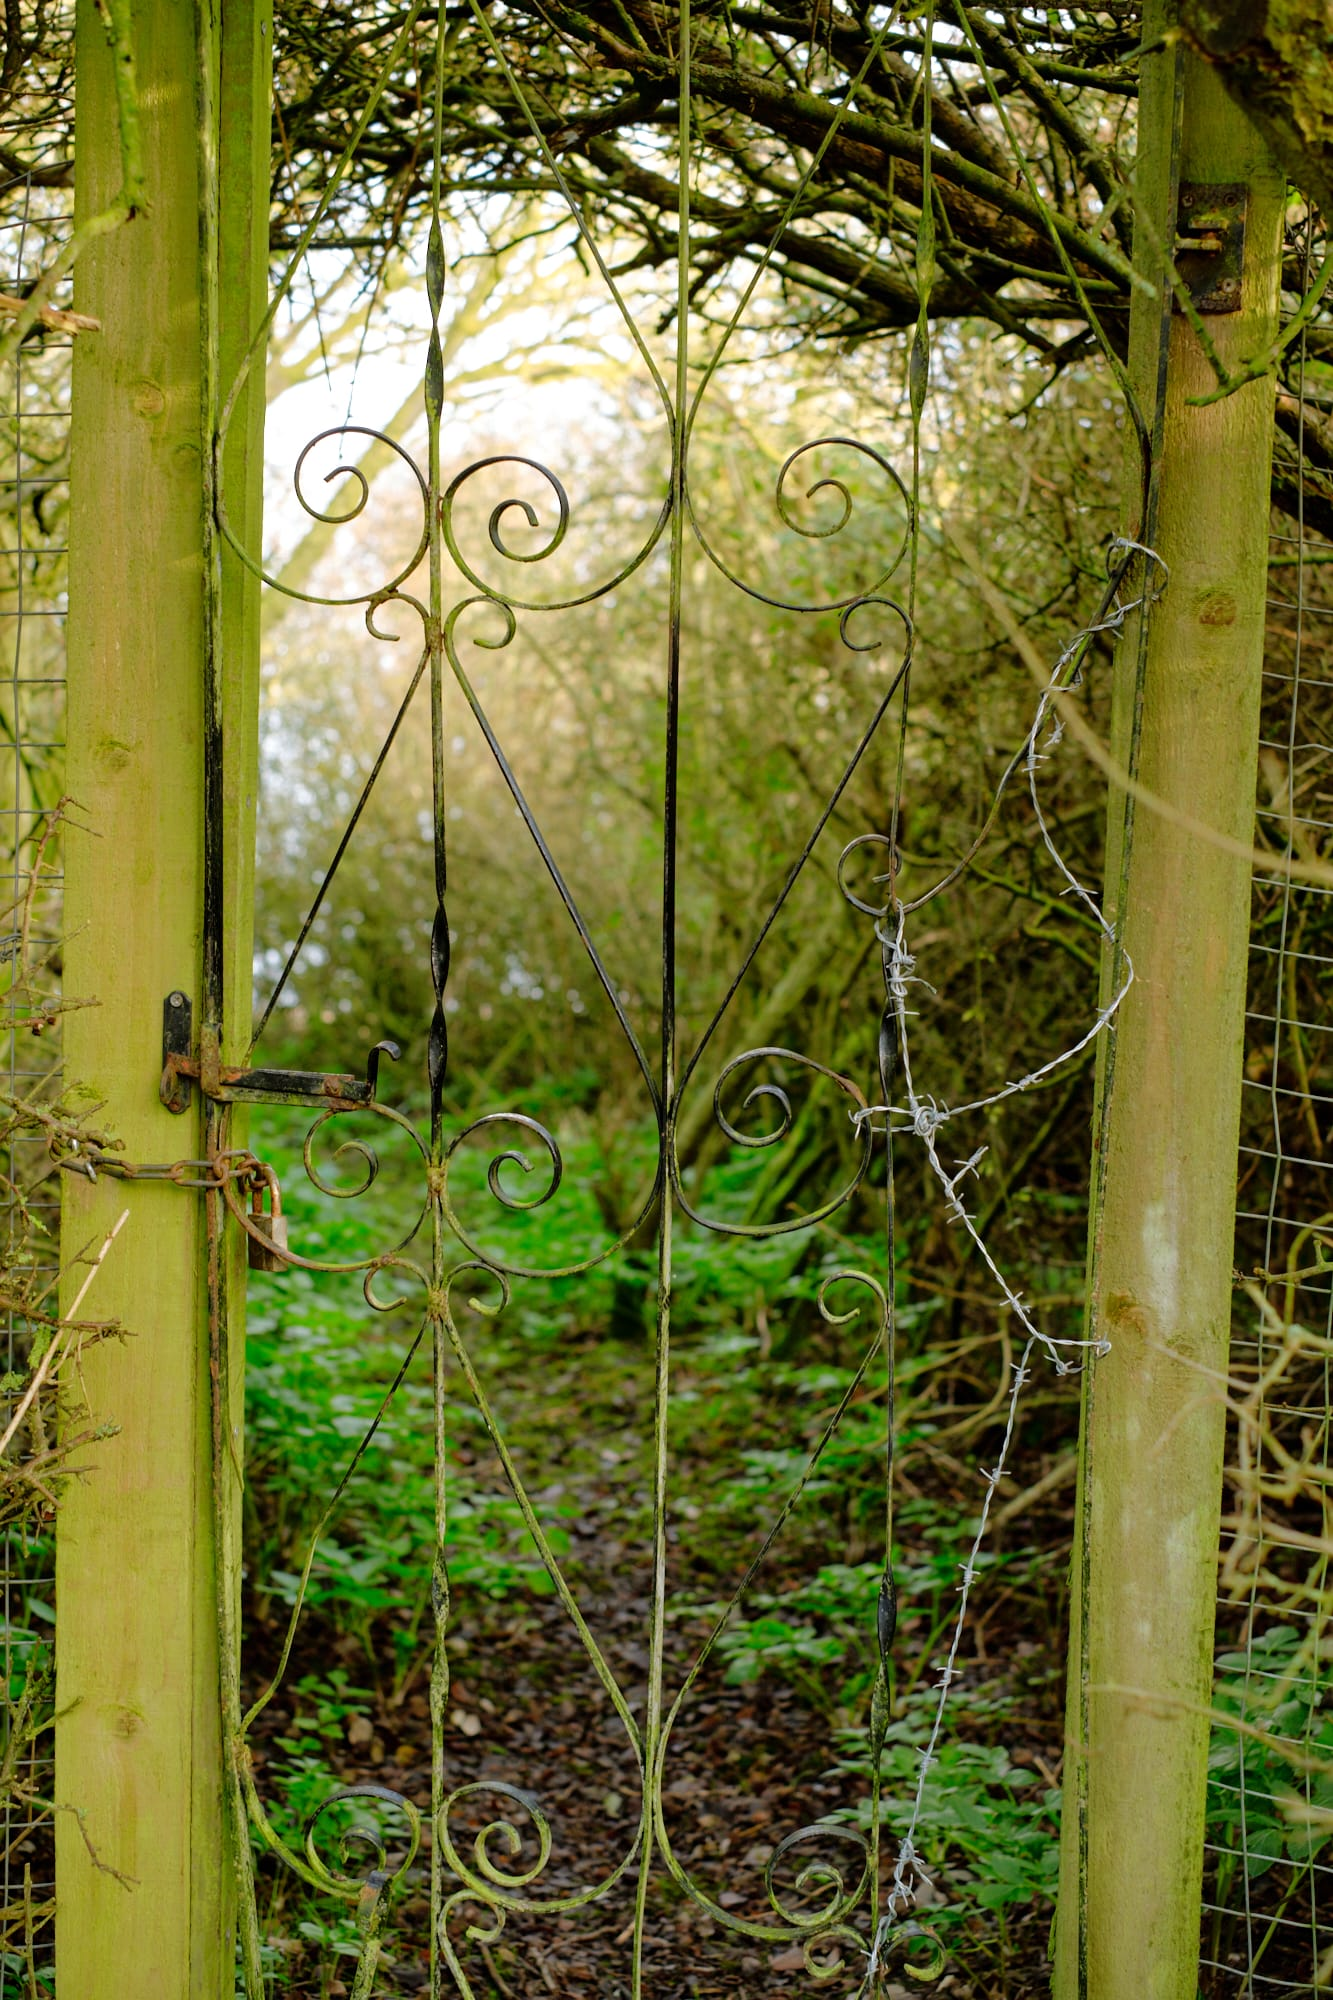 locked gate on wooded path